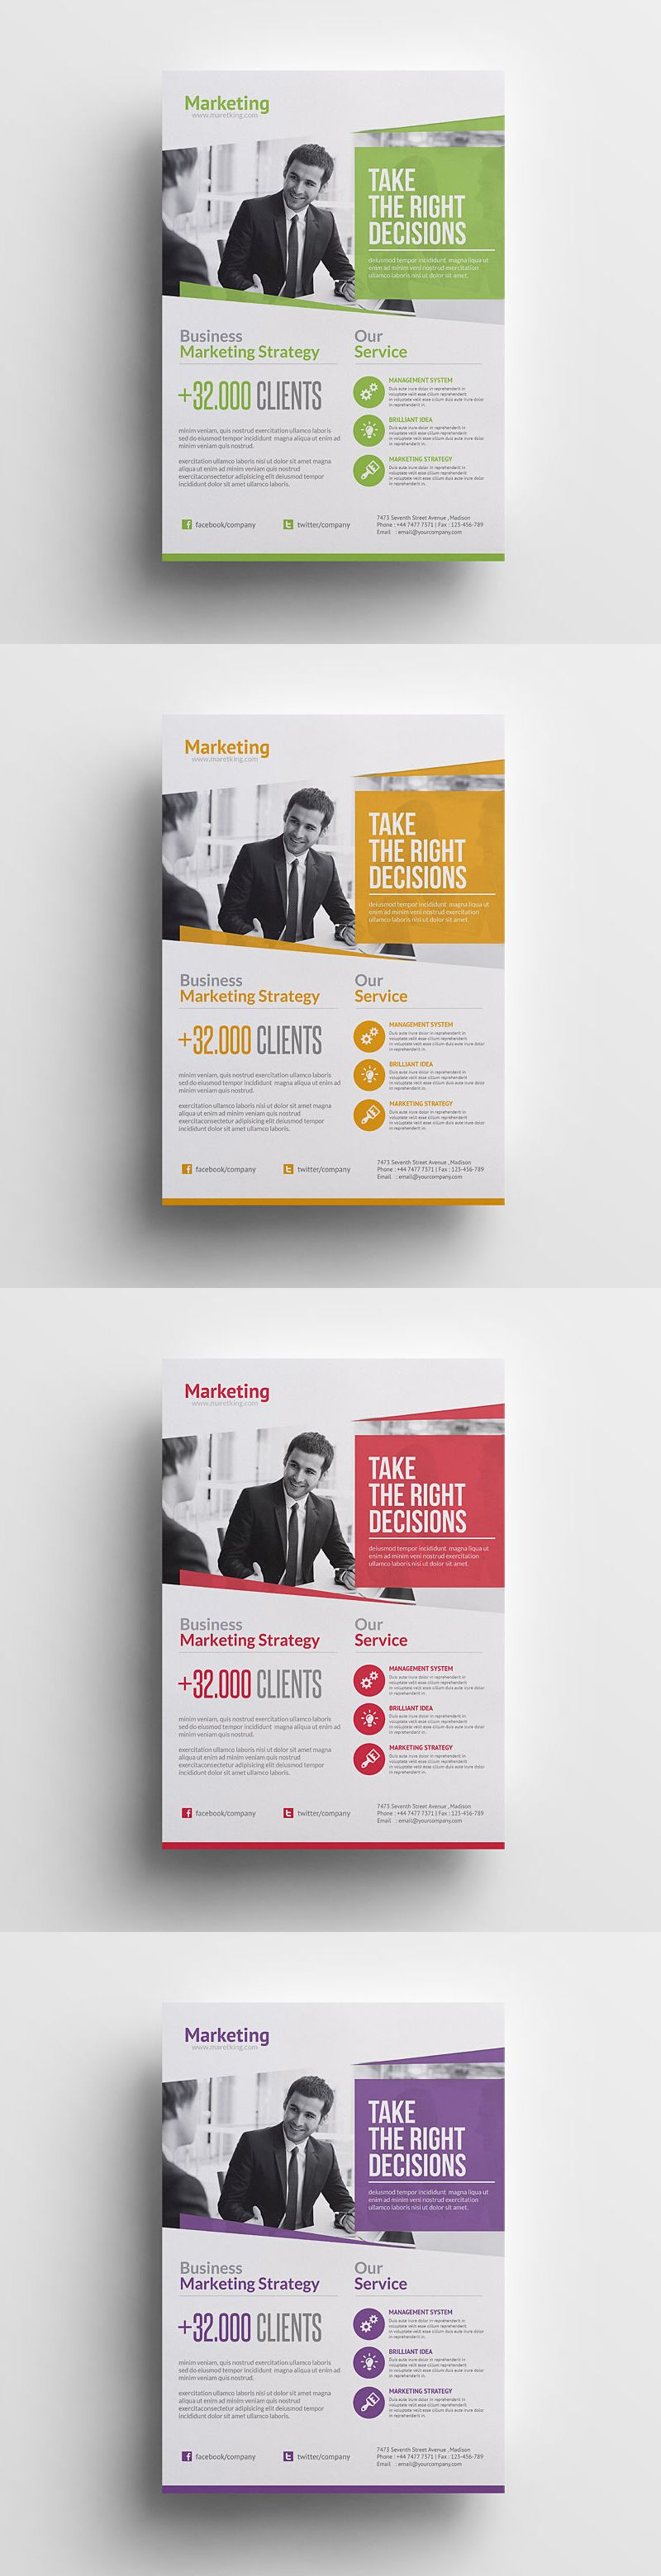 Marketing business flyer template psd flyer templates pinterest marketing business flyer template psd accmission Gallery